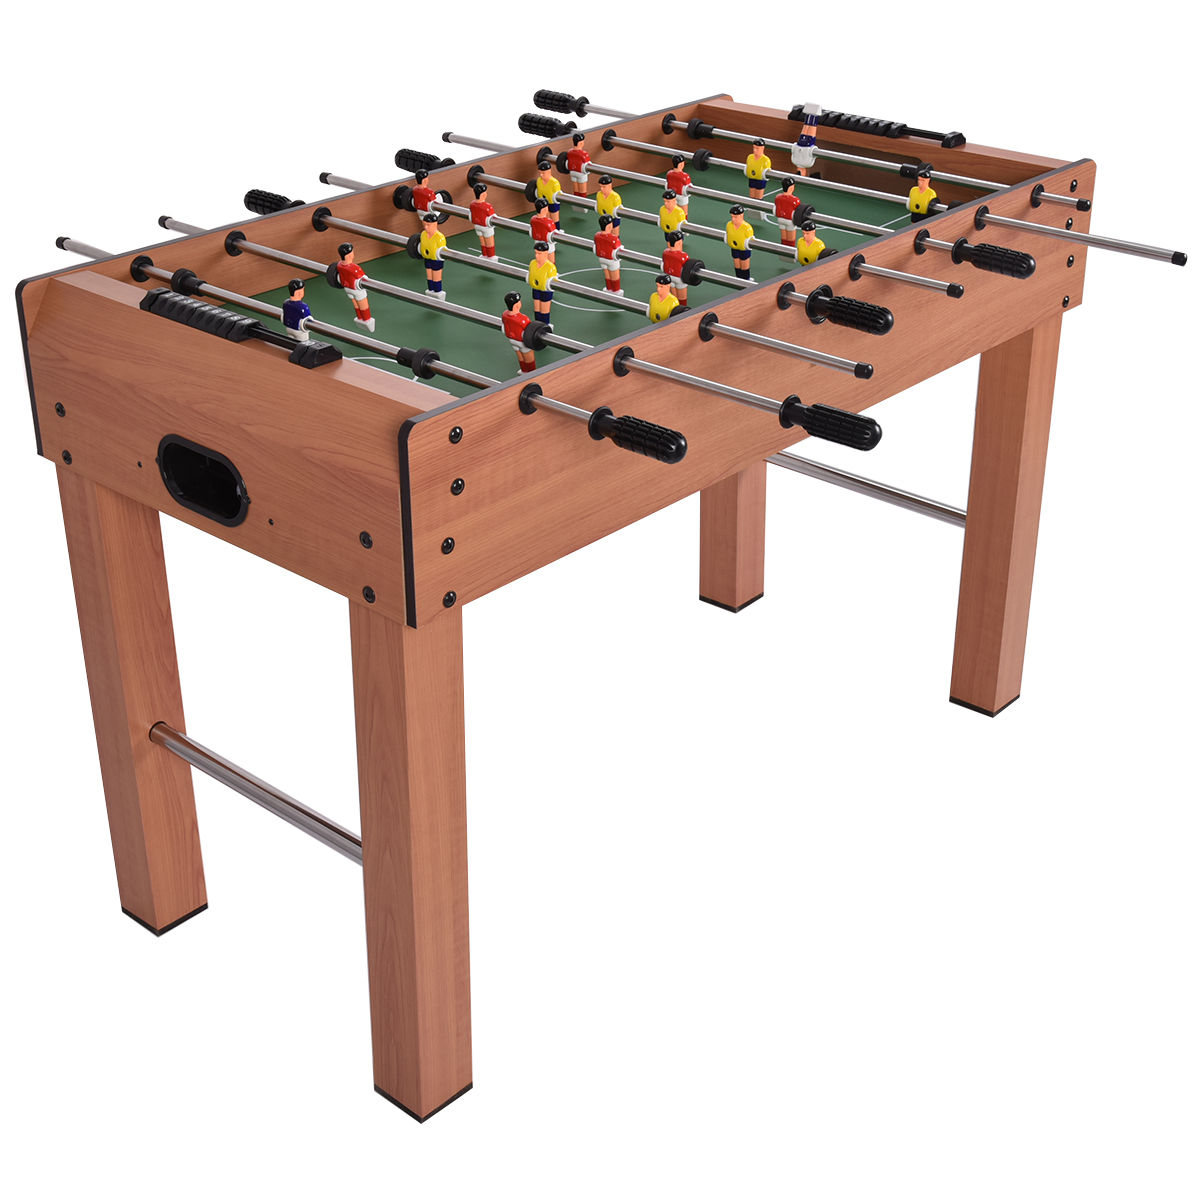 Costway 48u0027u0027 Foosball Table Competition Game Soccer Arcade Sized Football  Sports Indoor   Walmart.com